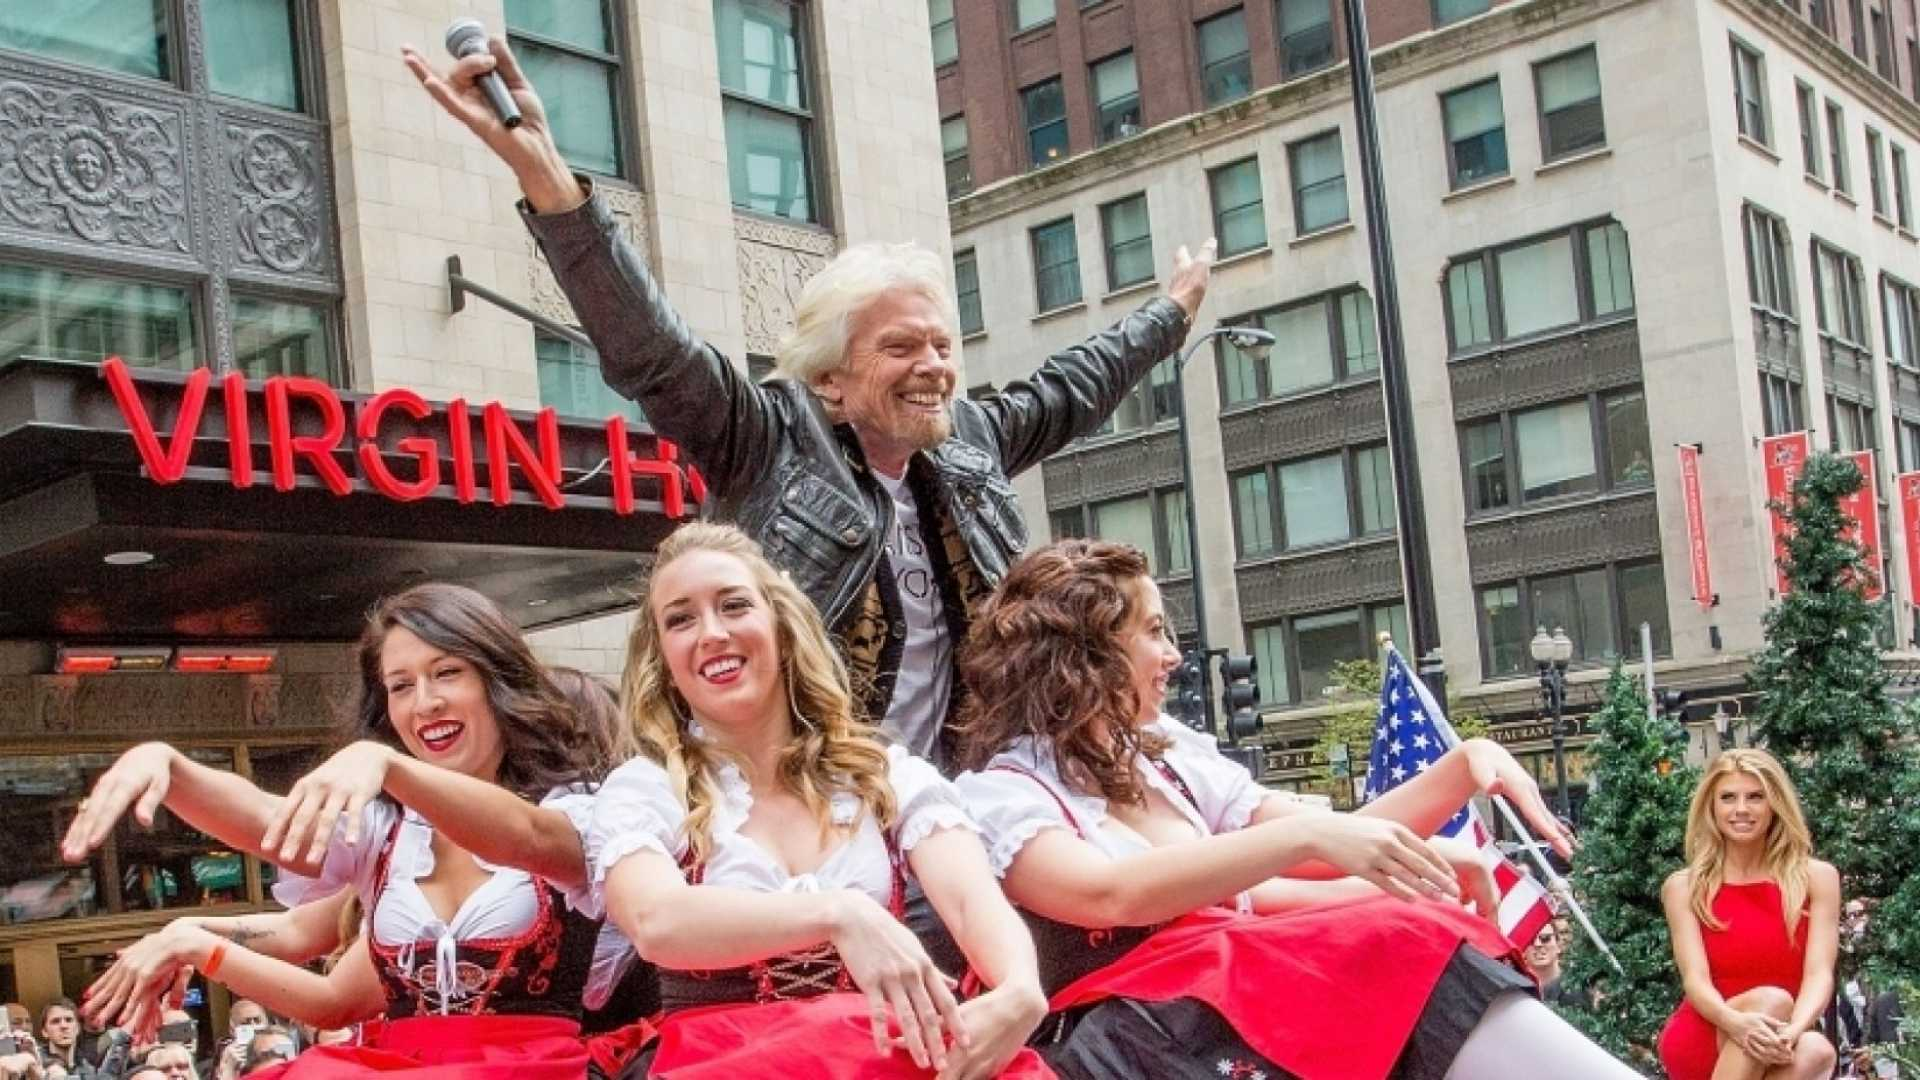 The 4 Simple Leadership Secrets I Learned From Richard Branson